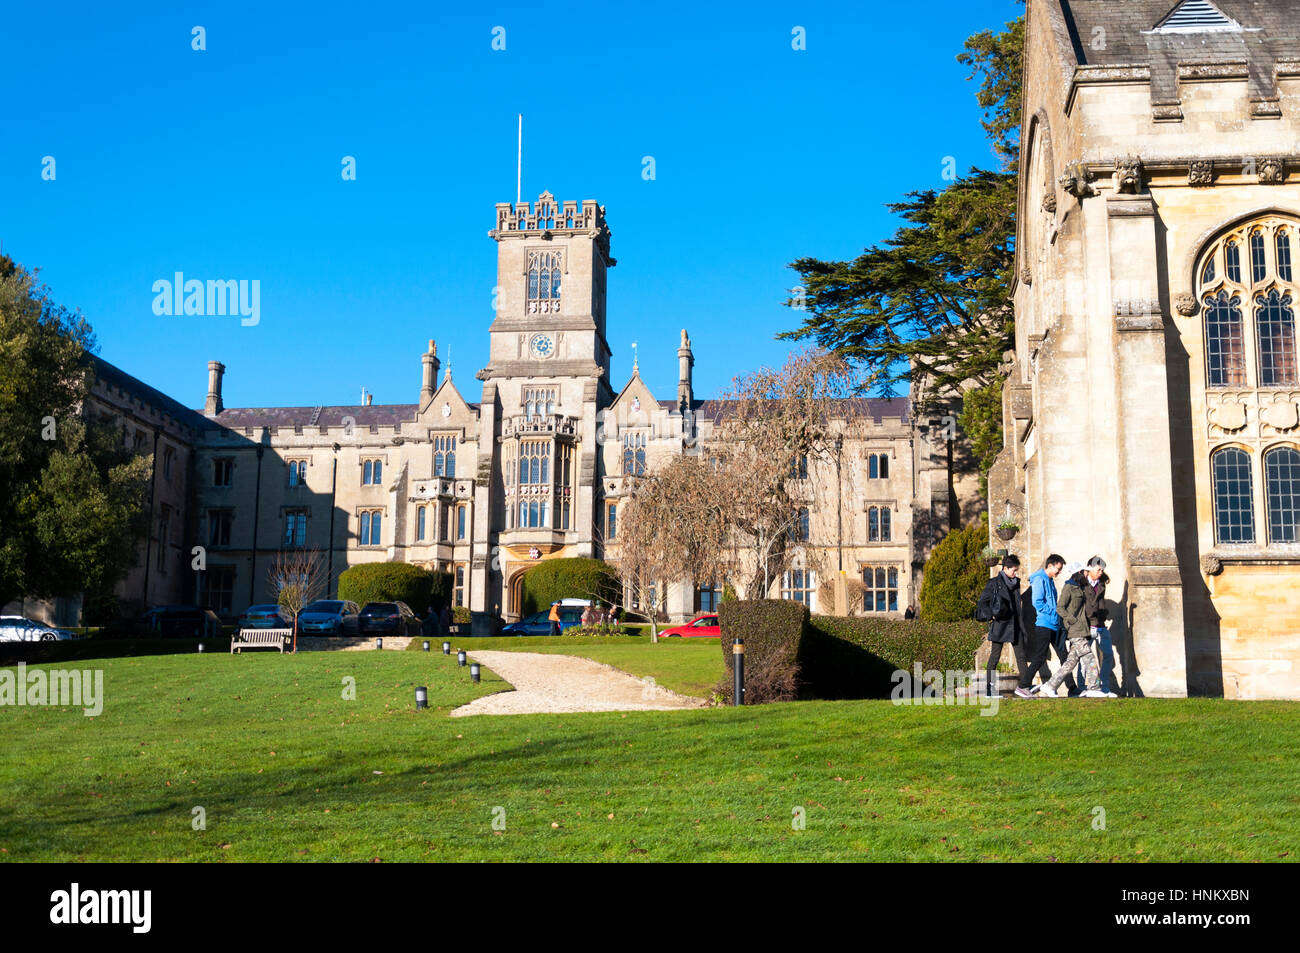 Kingswood School Bath, Somerset, England. Frontage architecture - Stock Image